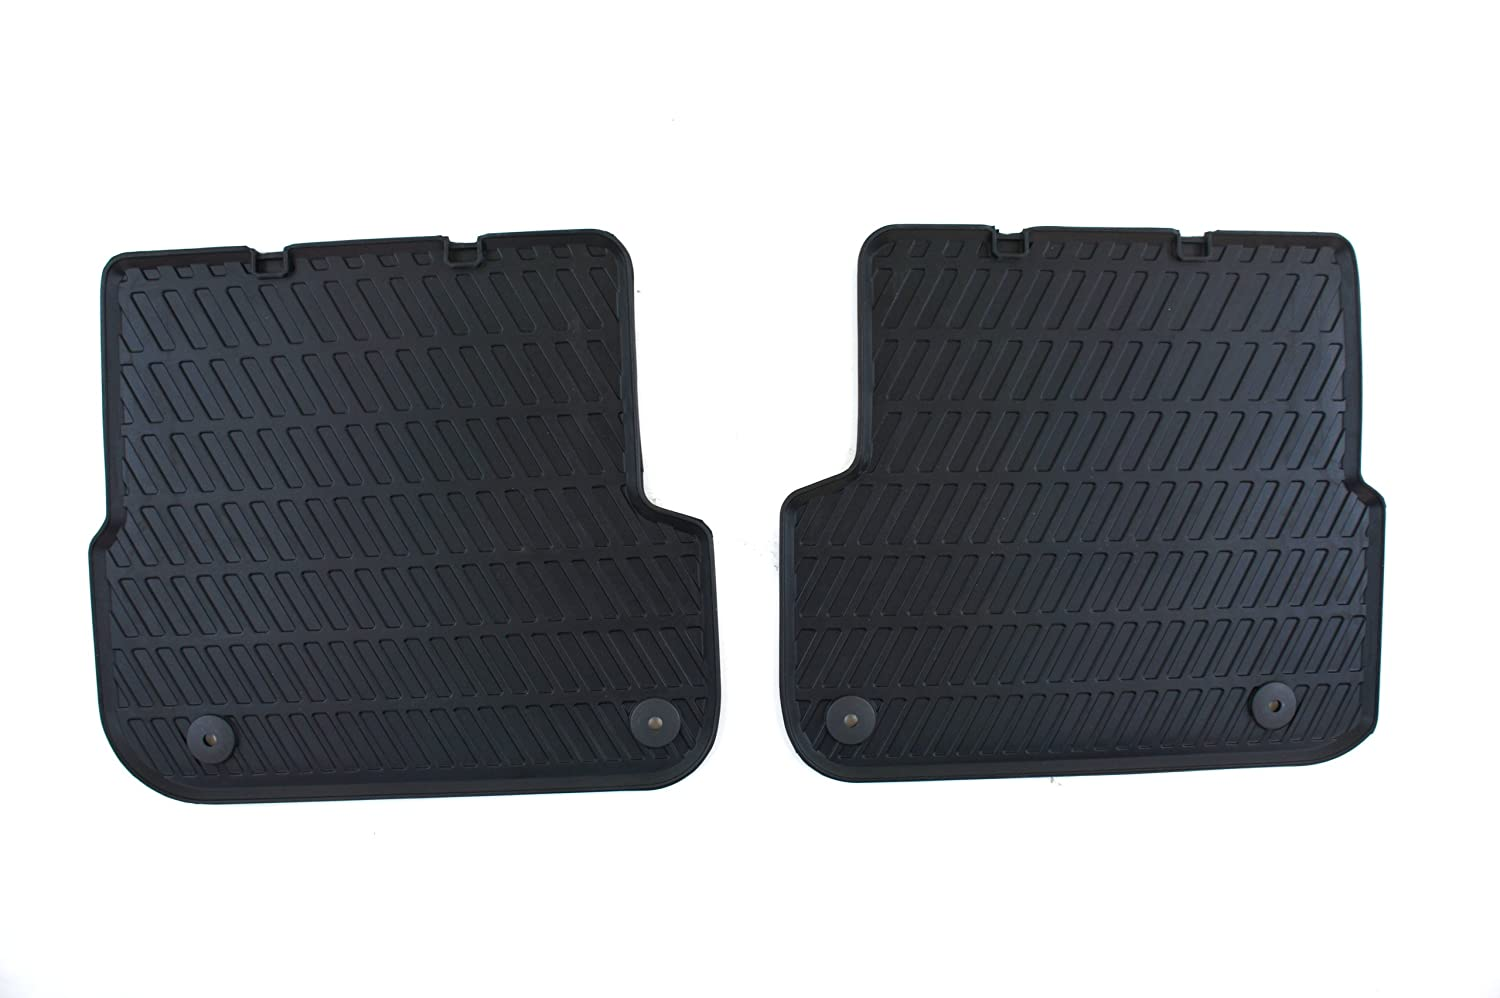 2009 2012 Passenger /& Rear Floor GGBAILEY D3856A-S1A-GY-LP Custom Fit Car Mats for 2008 2013 Nissan Altima Coupe Grey Loop Driver 2011 2010